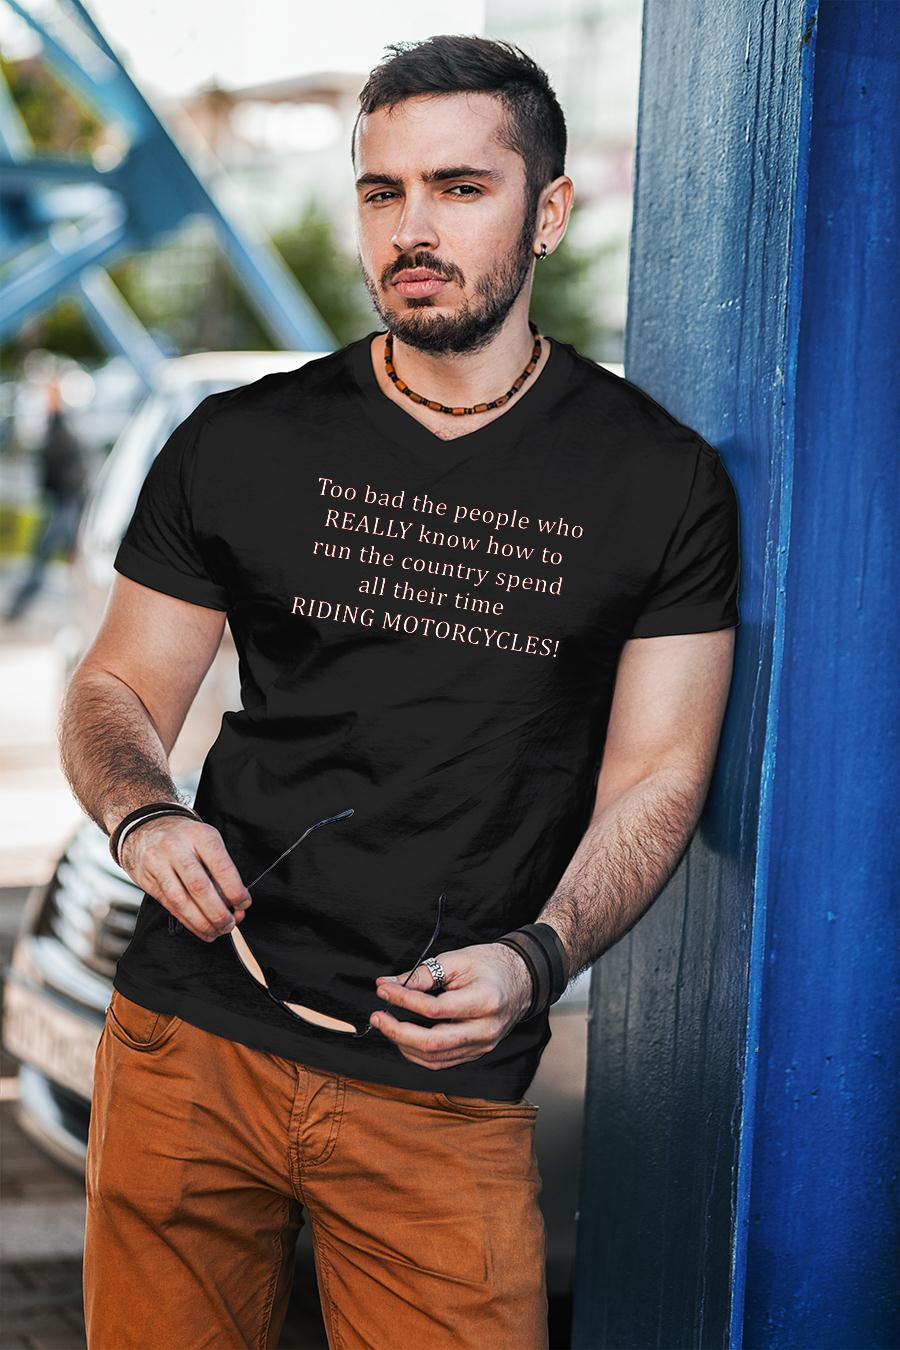 Too bad the people who really know how to run the country spend all their time riding motorcycles shirt unisex